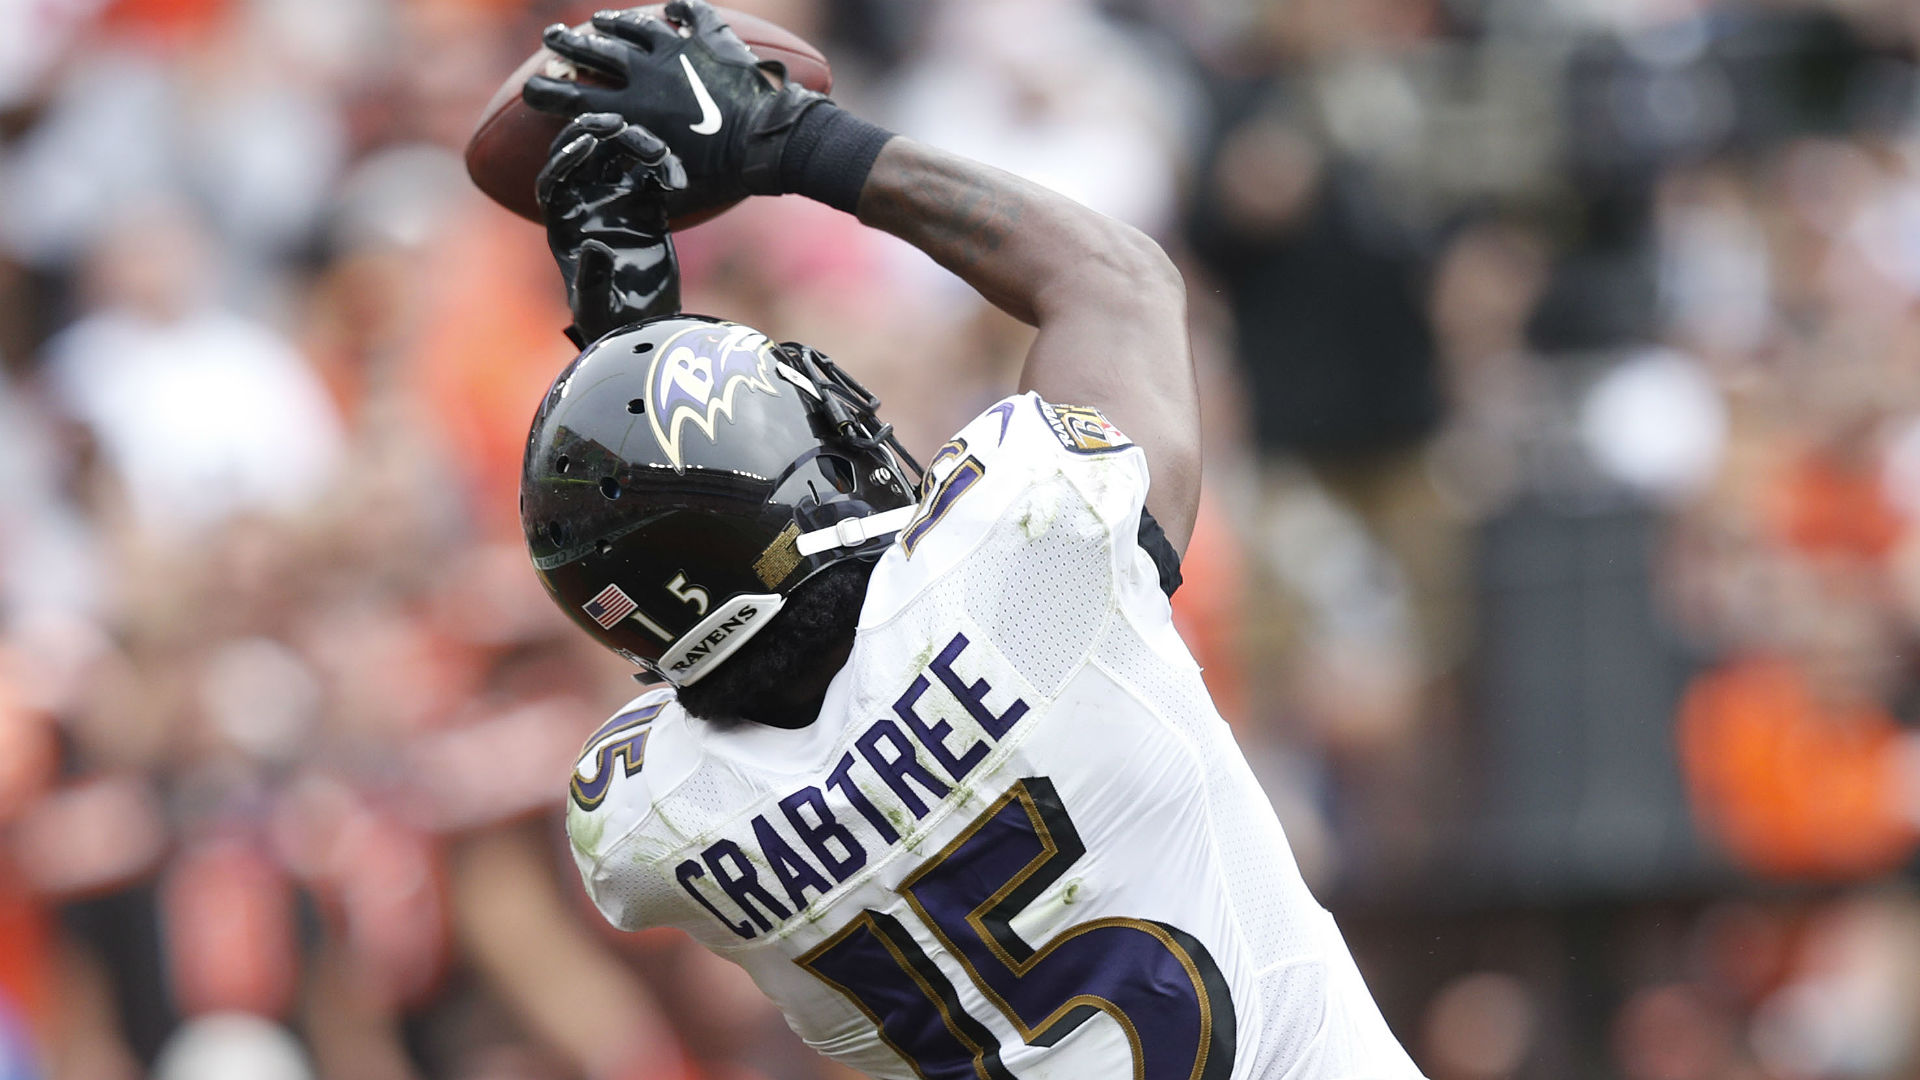 Cardinals agree to terms with wide receiver Michael Crabtree